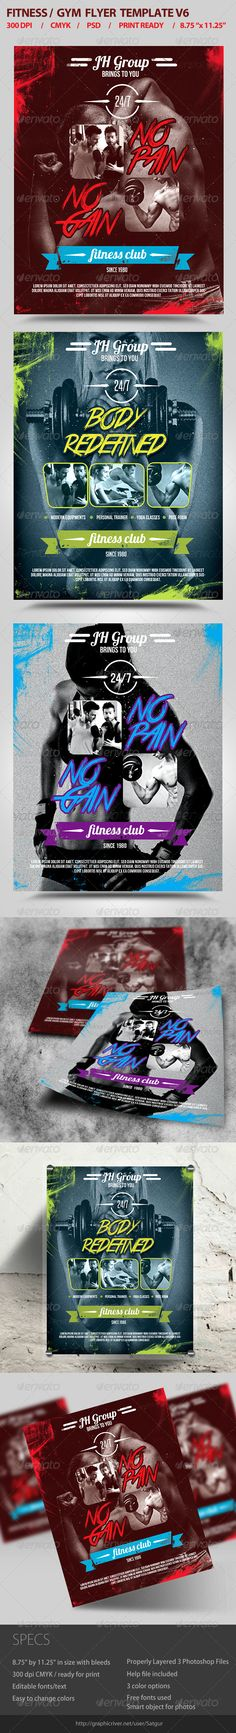 Fitness Flyer / Gym Flyer Template PSD V6 - Flyers Print Templates